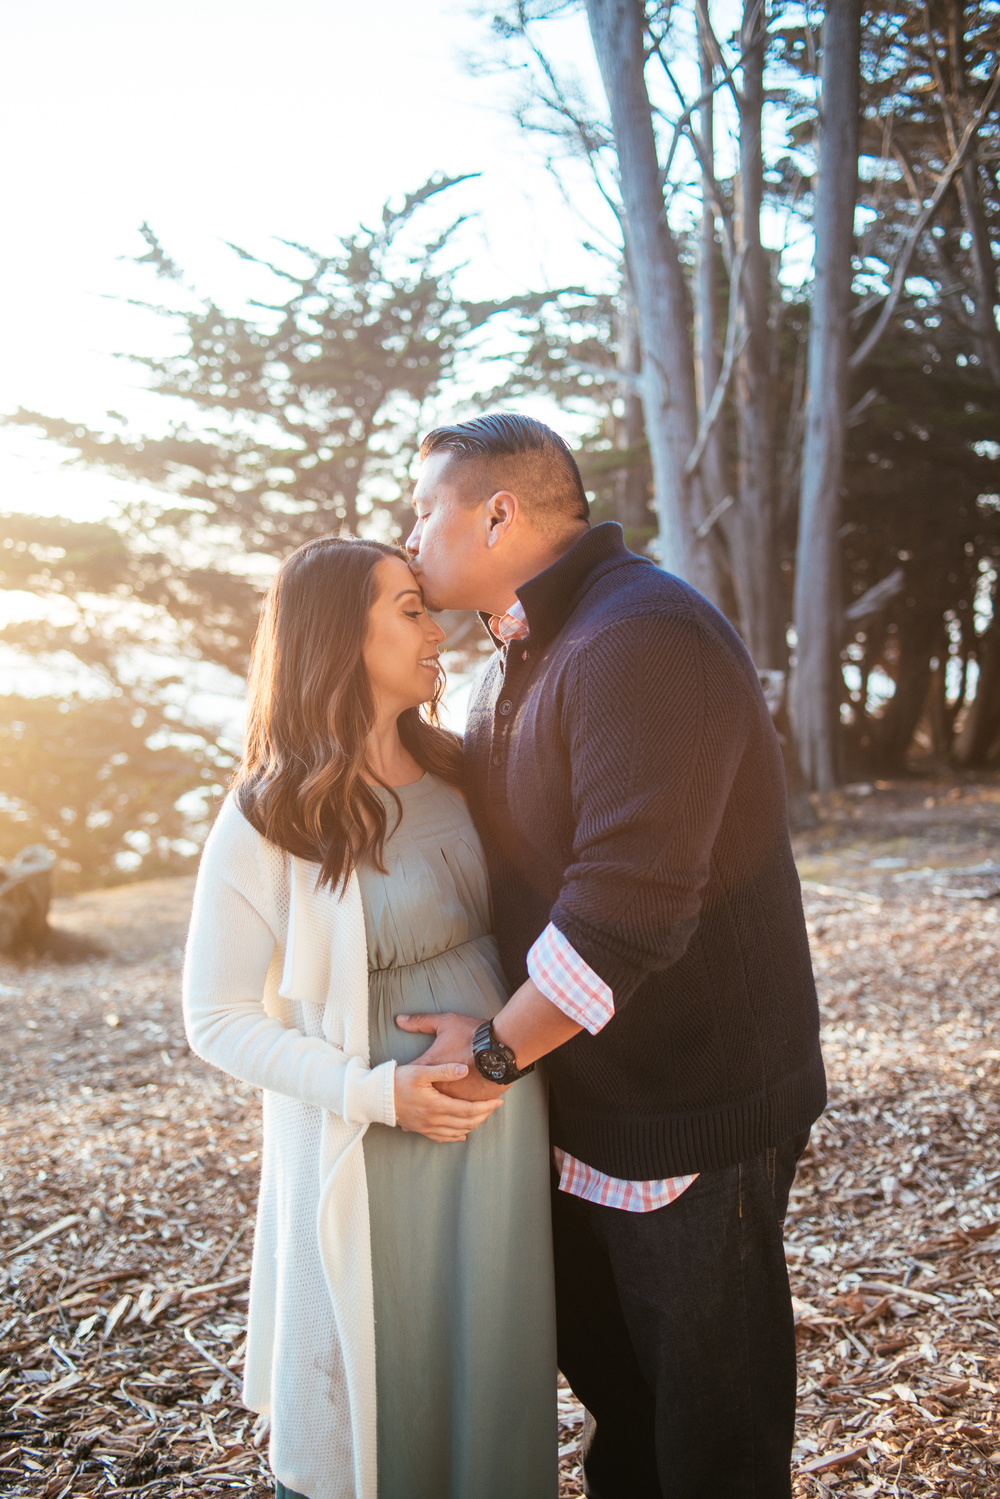 melissademata.com | Maternity Photo Shoot, Jackie & Joey